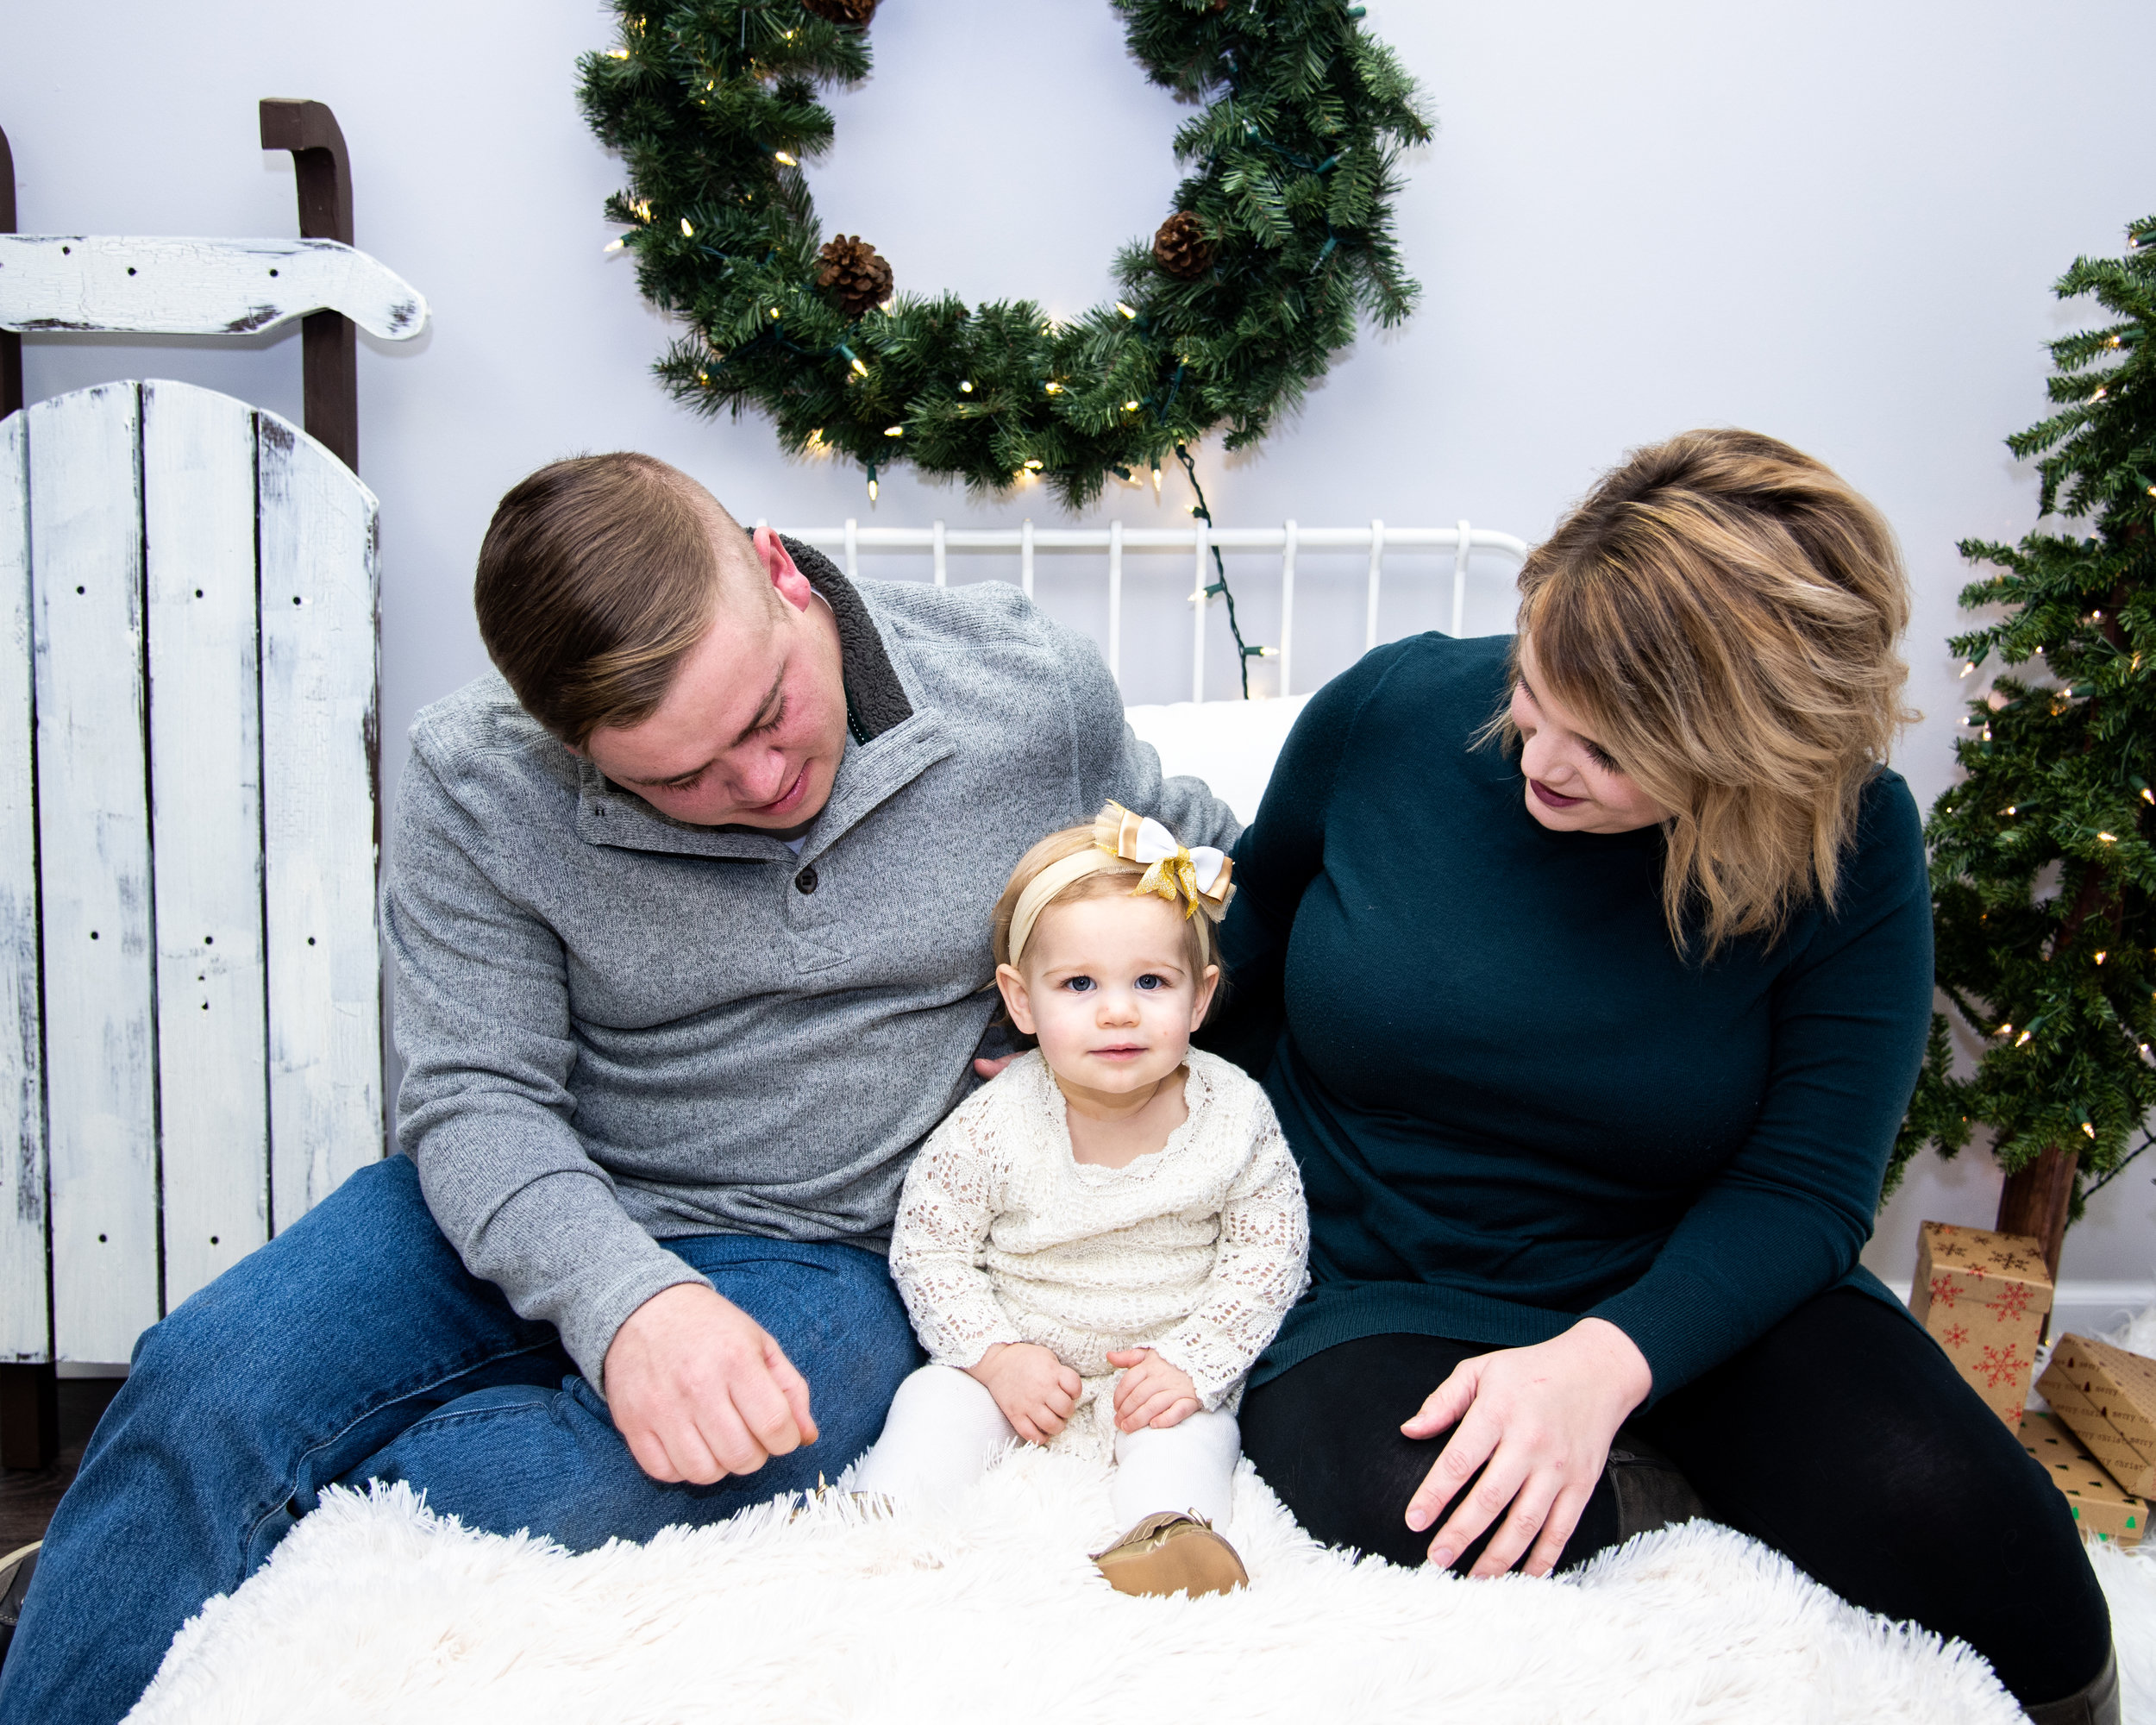 Kyla Jo Photography // Muncie. Indiana // Midwest Photographer // Studio Photography // Christmas Family Session